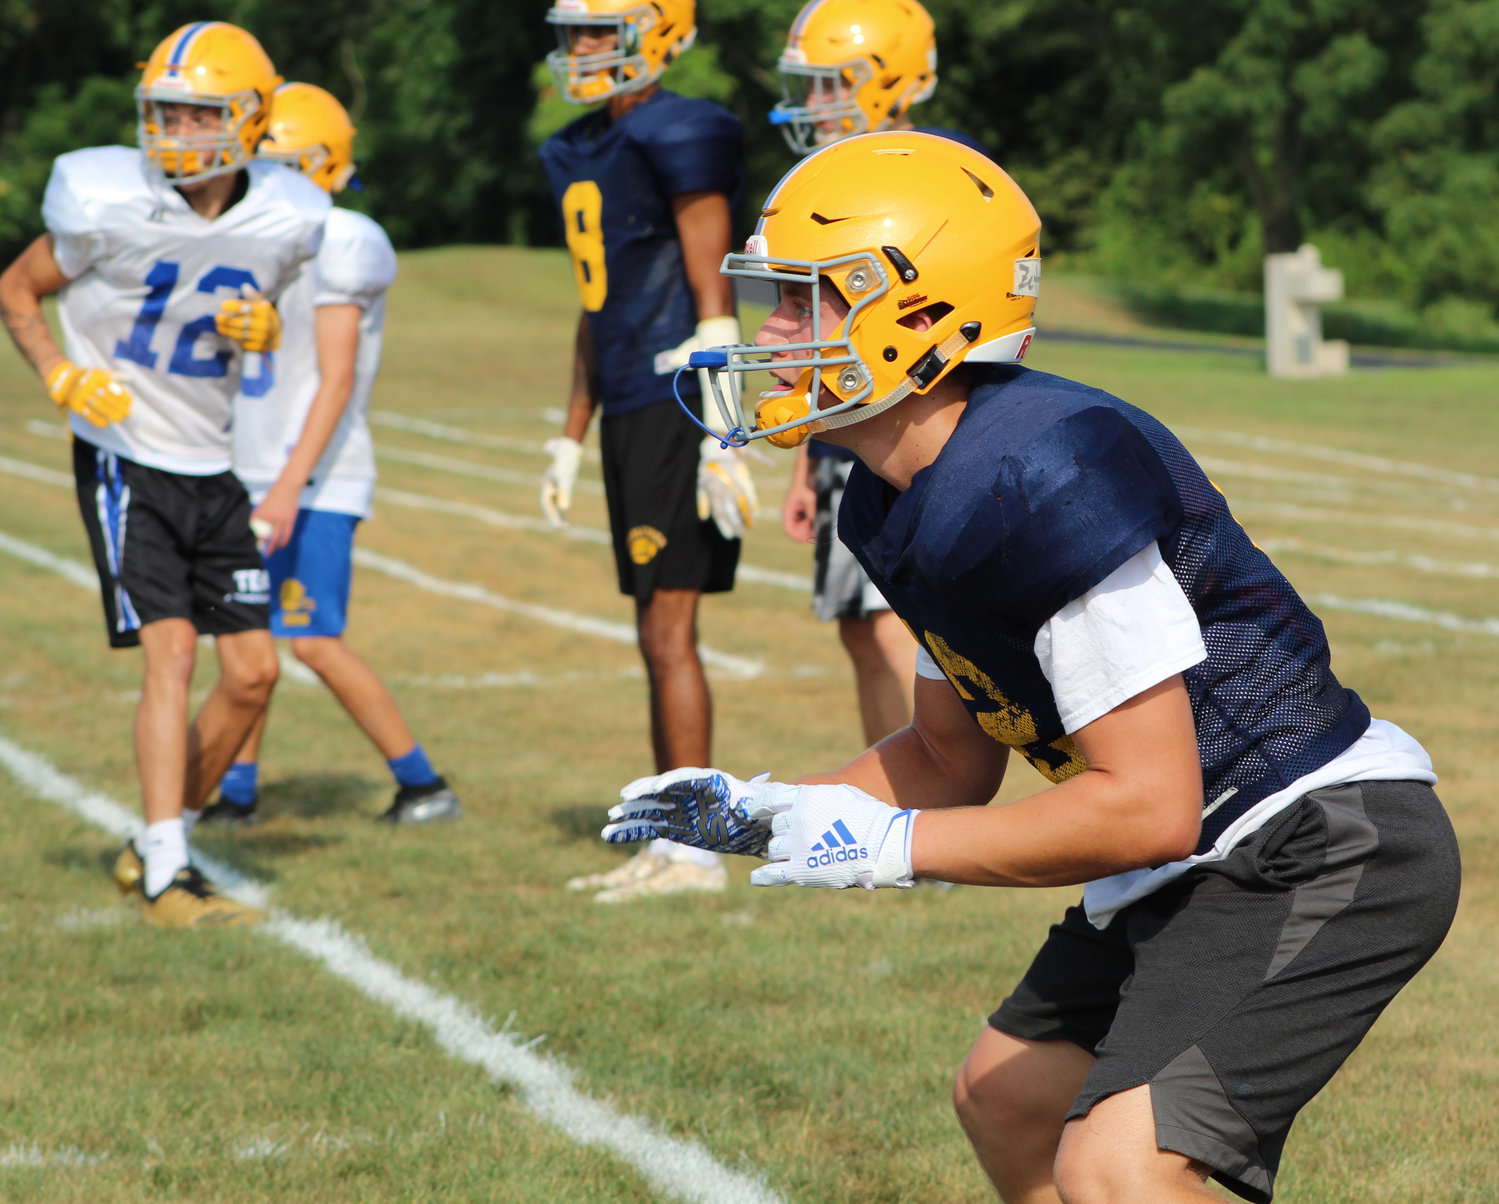 Dylon Zettlemoyer prepares to catch the ball during heat acclimatization on Aug. 5.